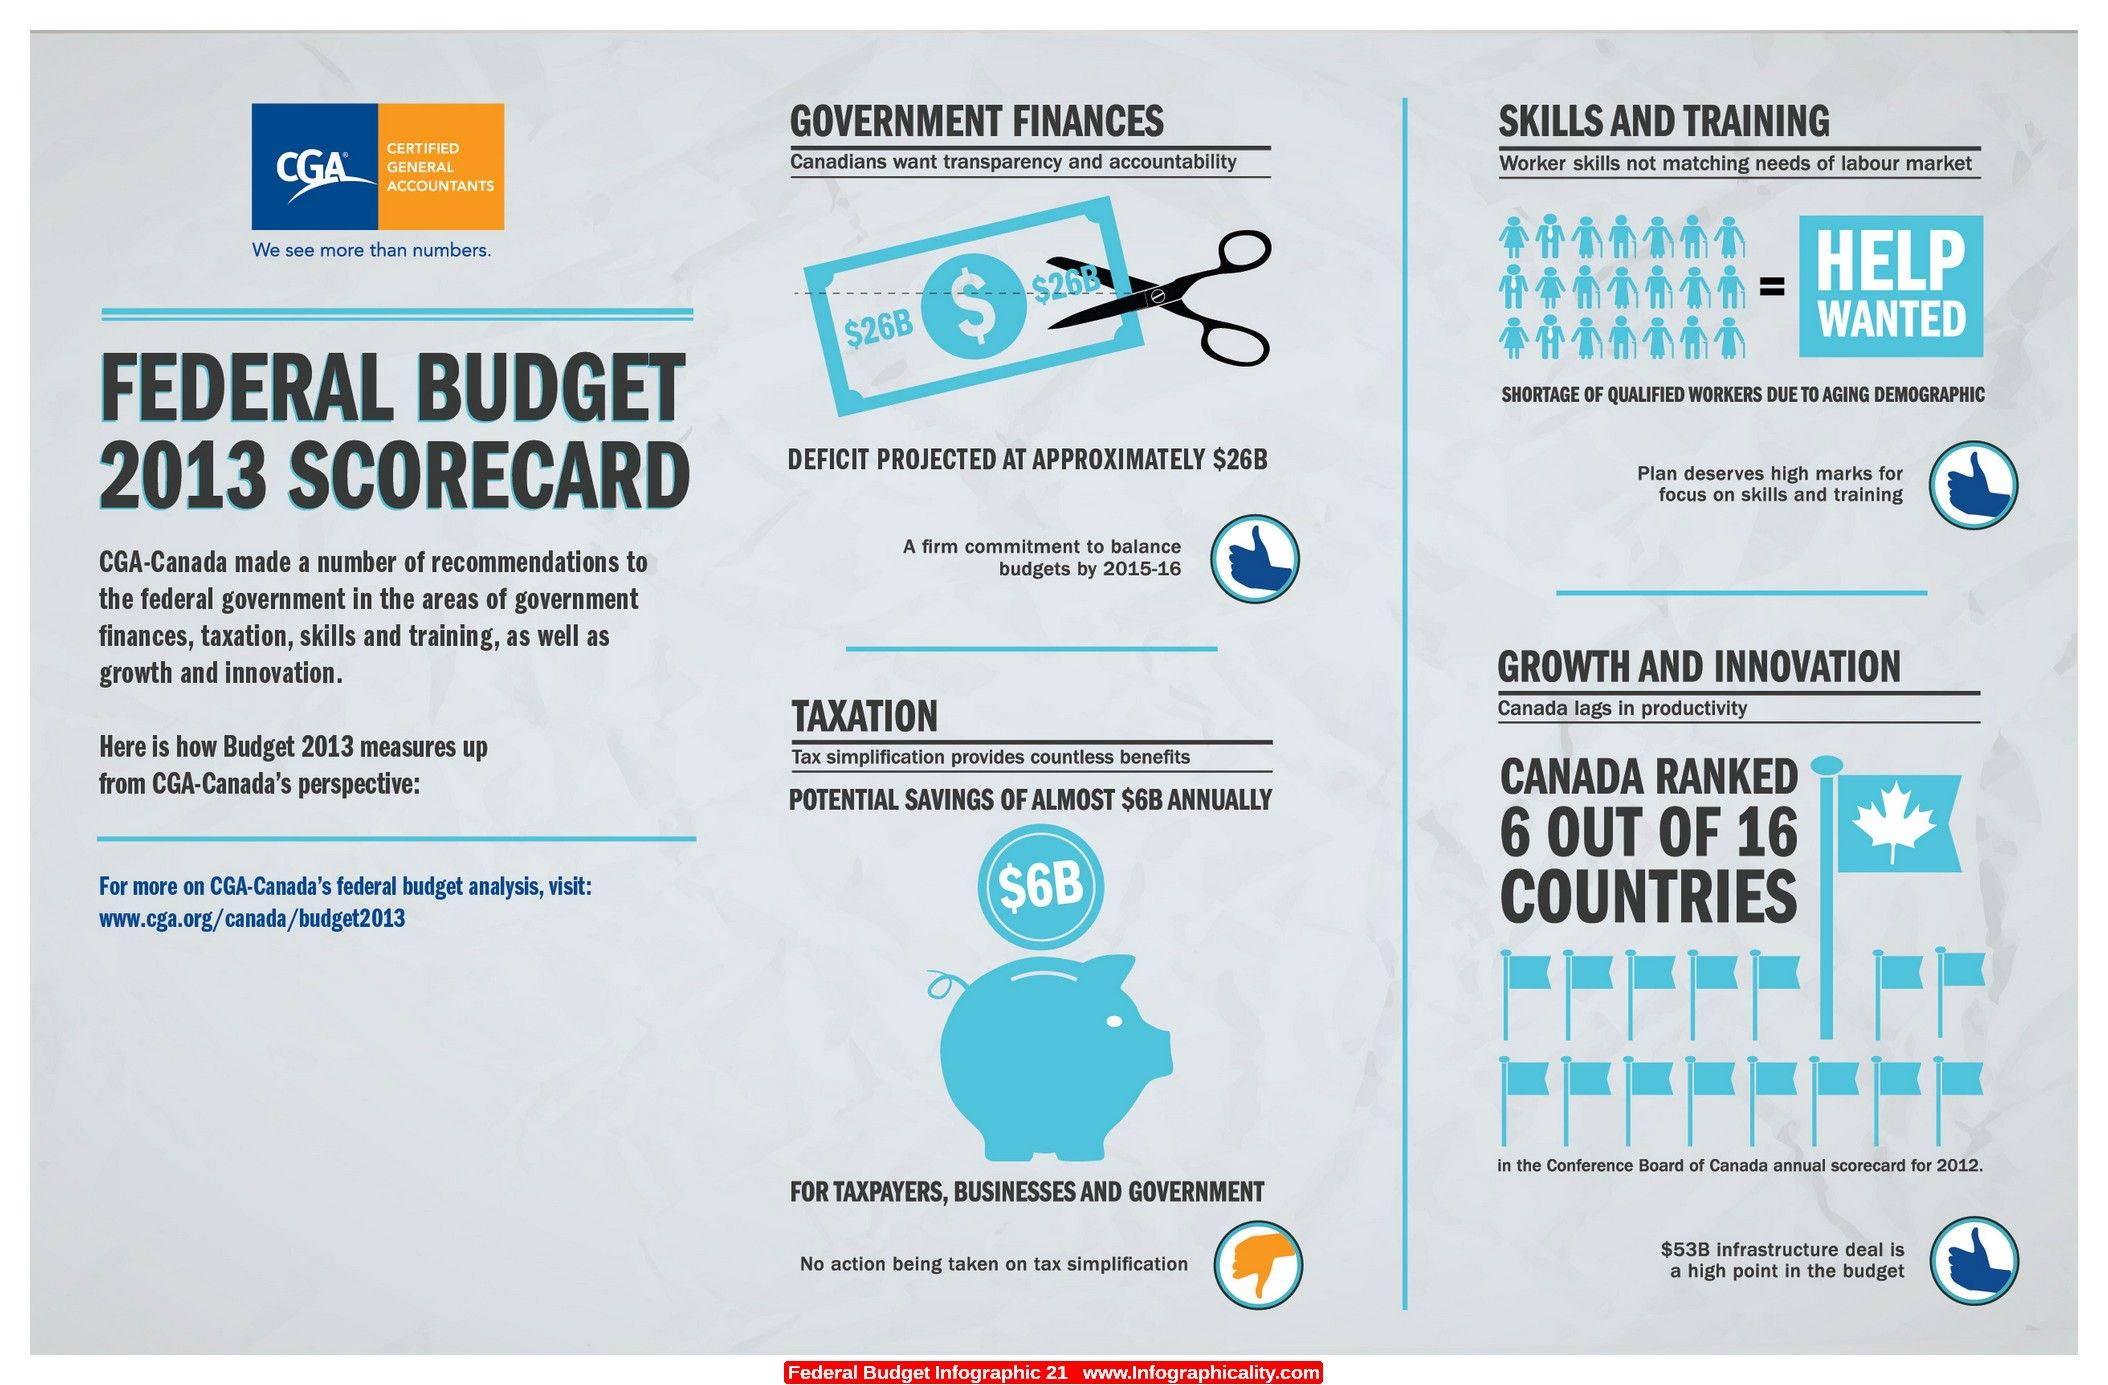 Federal Budget Infographic 21 - http://infographicality.com/federal-budget-infographic-21/